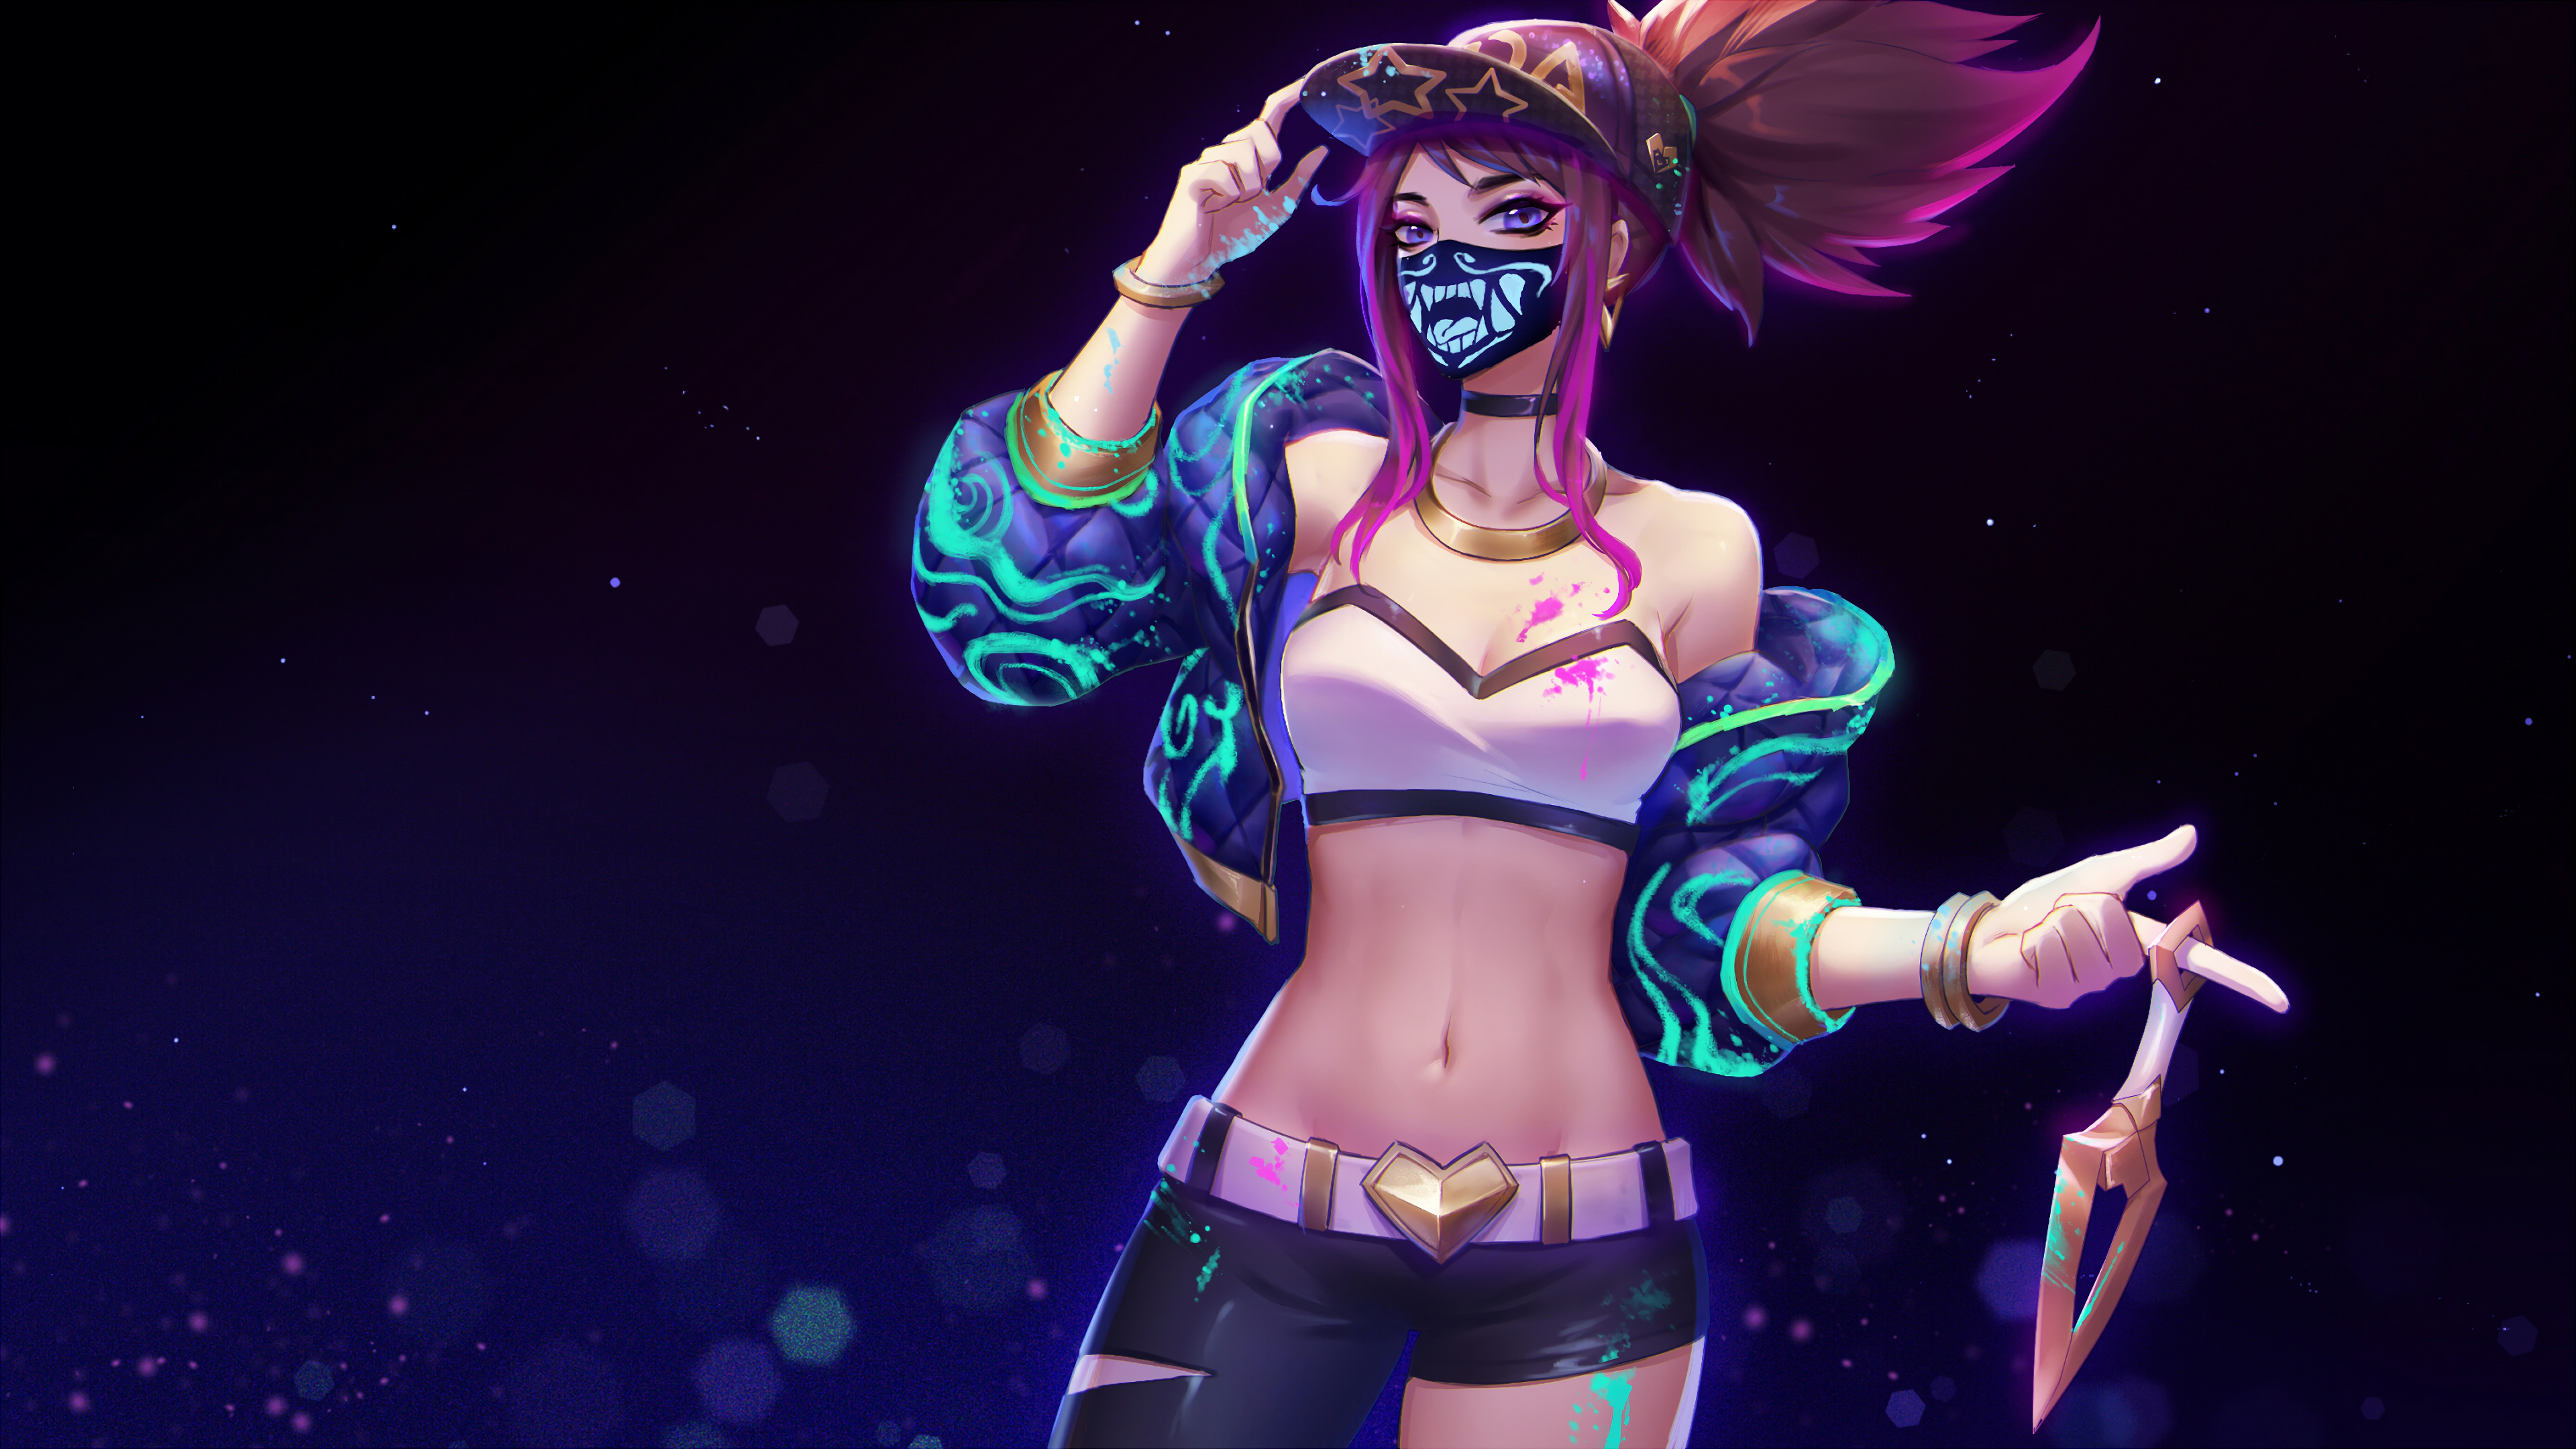 kda kali mask league of legends 4k 1547319352 - Kda Kali Mask League Of Legends 4k - league of legends wallpapers, hd-wallpapers, fantasy girls wallpapers, digital art wallpapers, artwork wallpapers, artist wallpapers, akali league of legends wallpapers, 4k-wallpapers